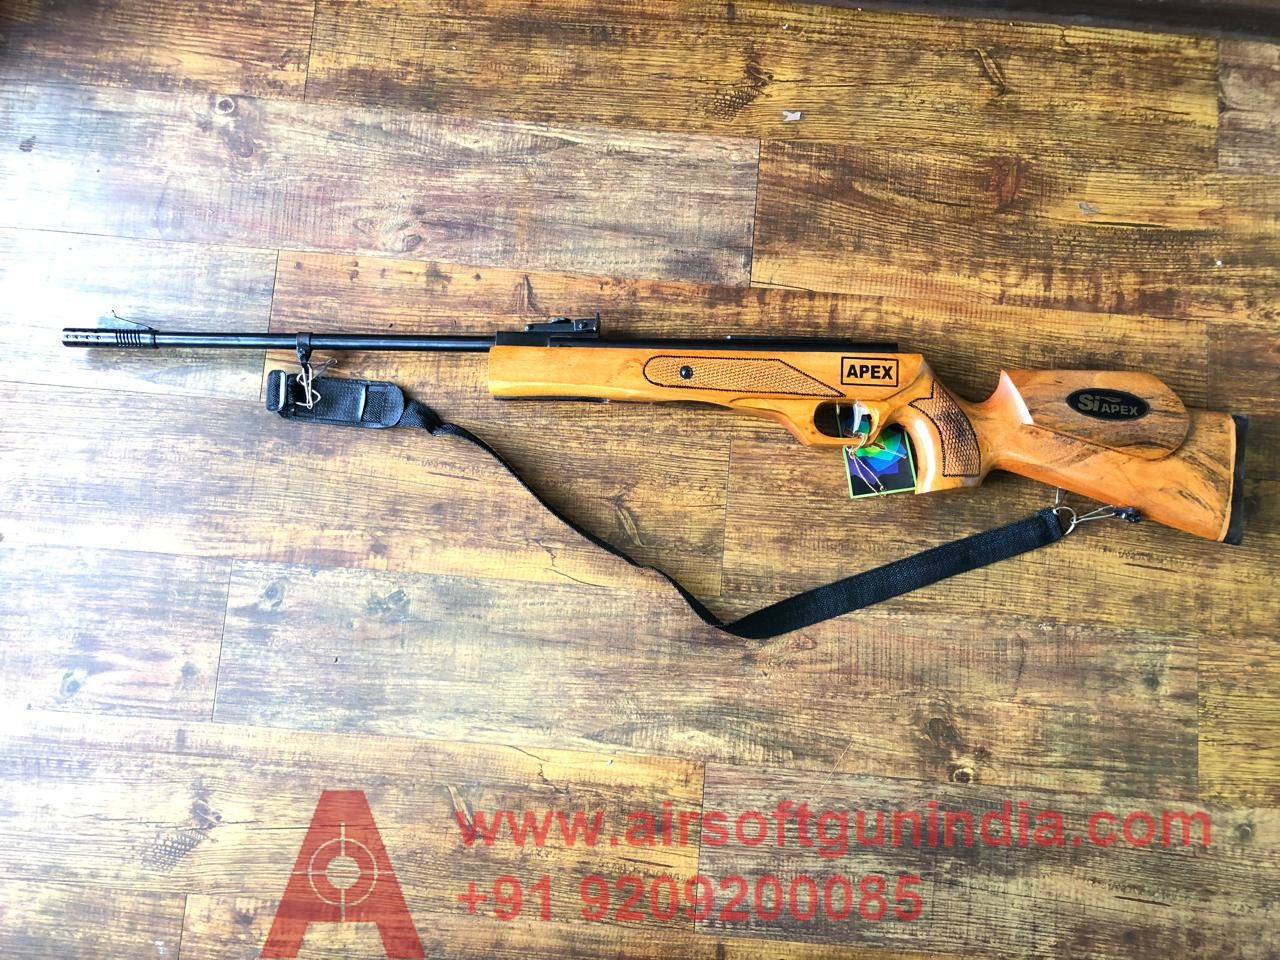 Apex Air Rifle With Safety Lock By Airsoft Gun India